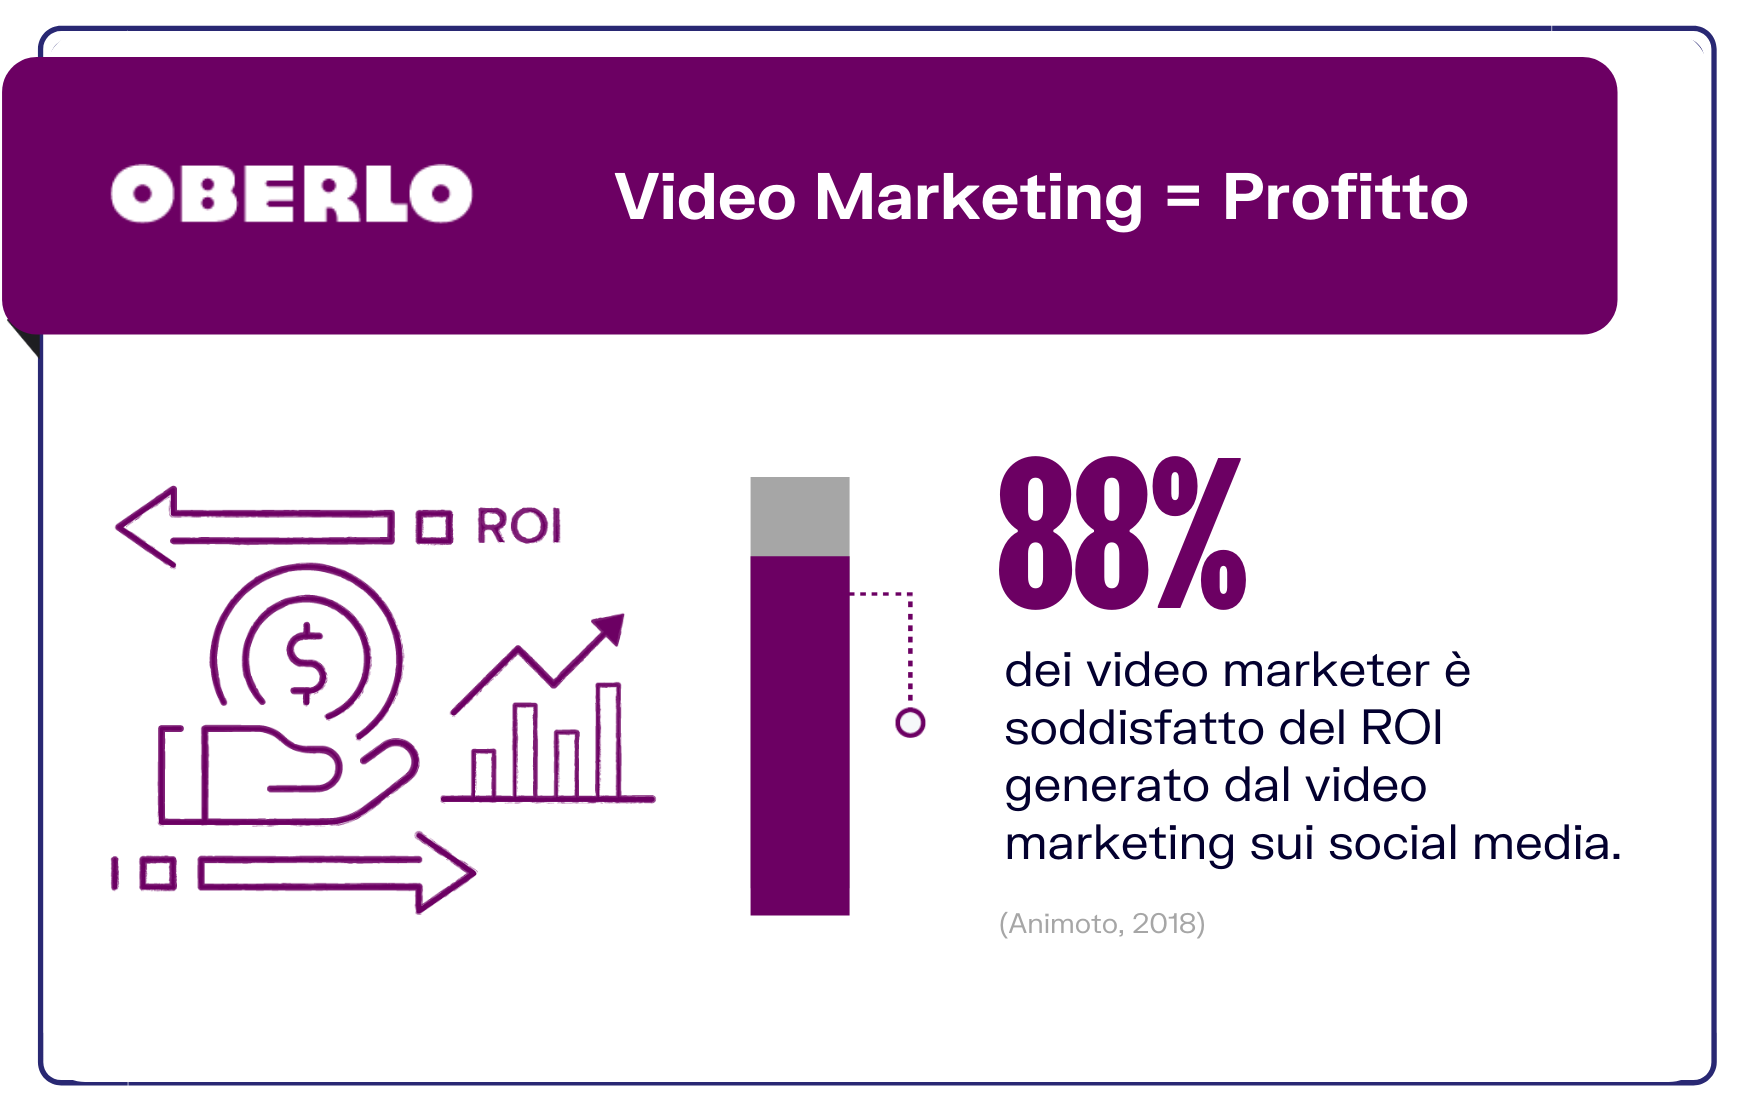 profitto dei video